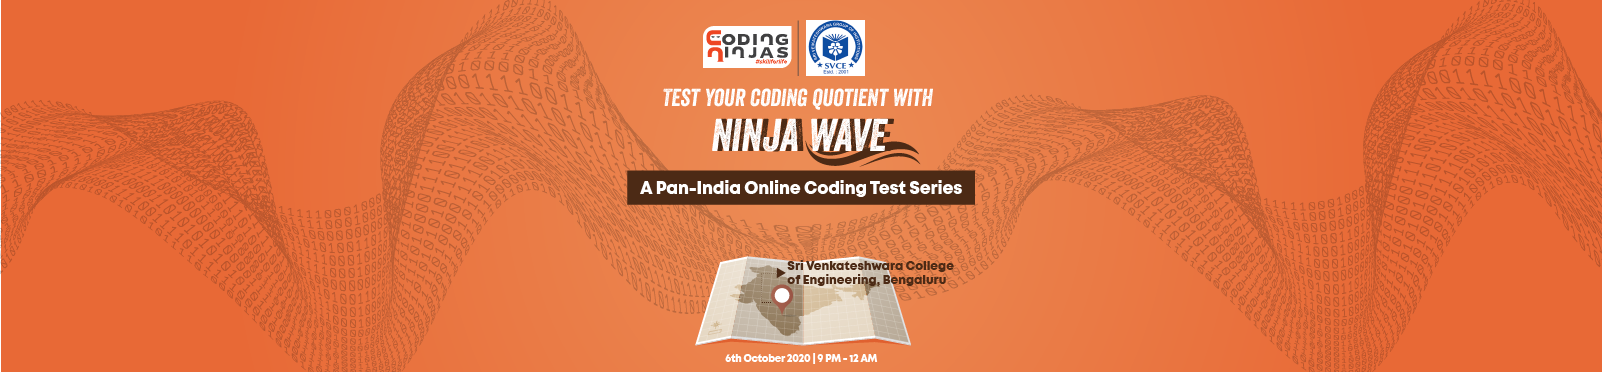 Ninja Wave at Sri Venkateshwara College of Engineering